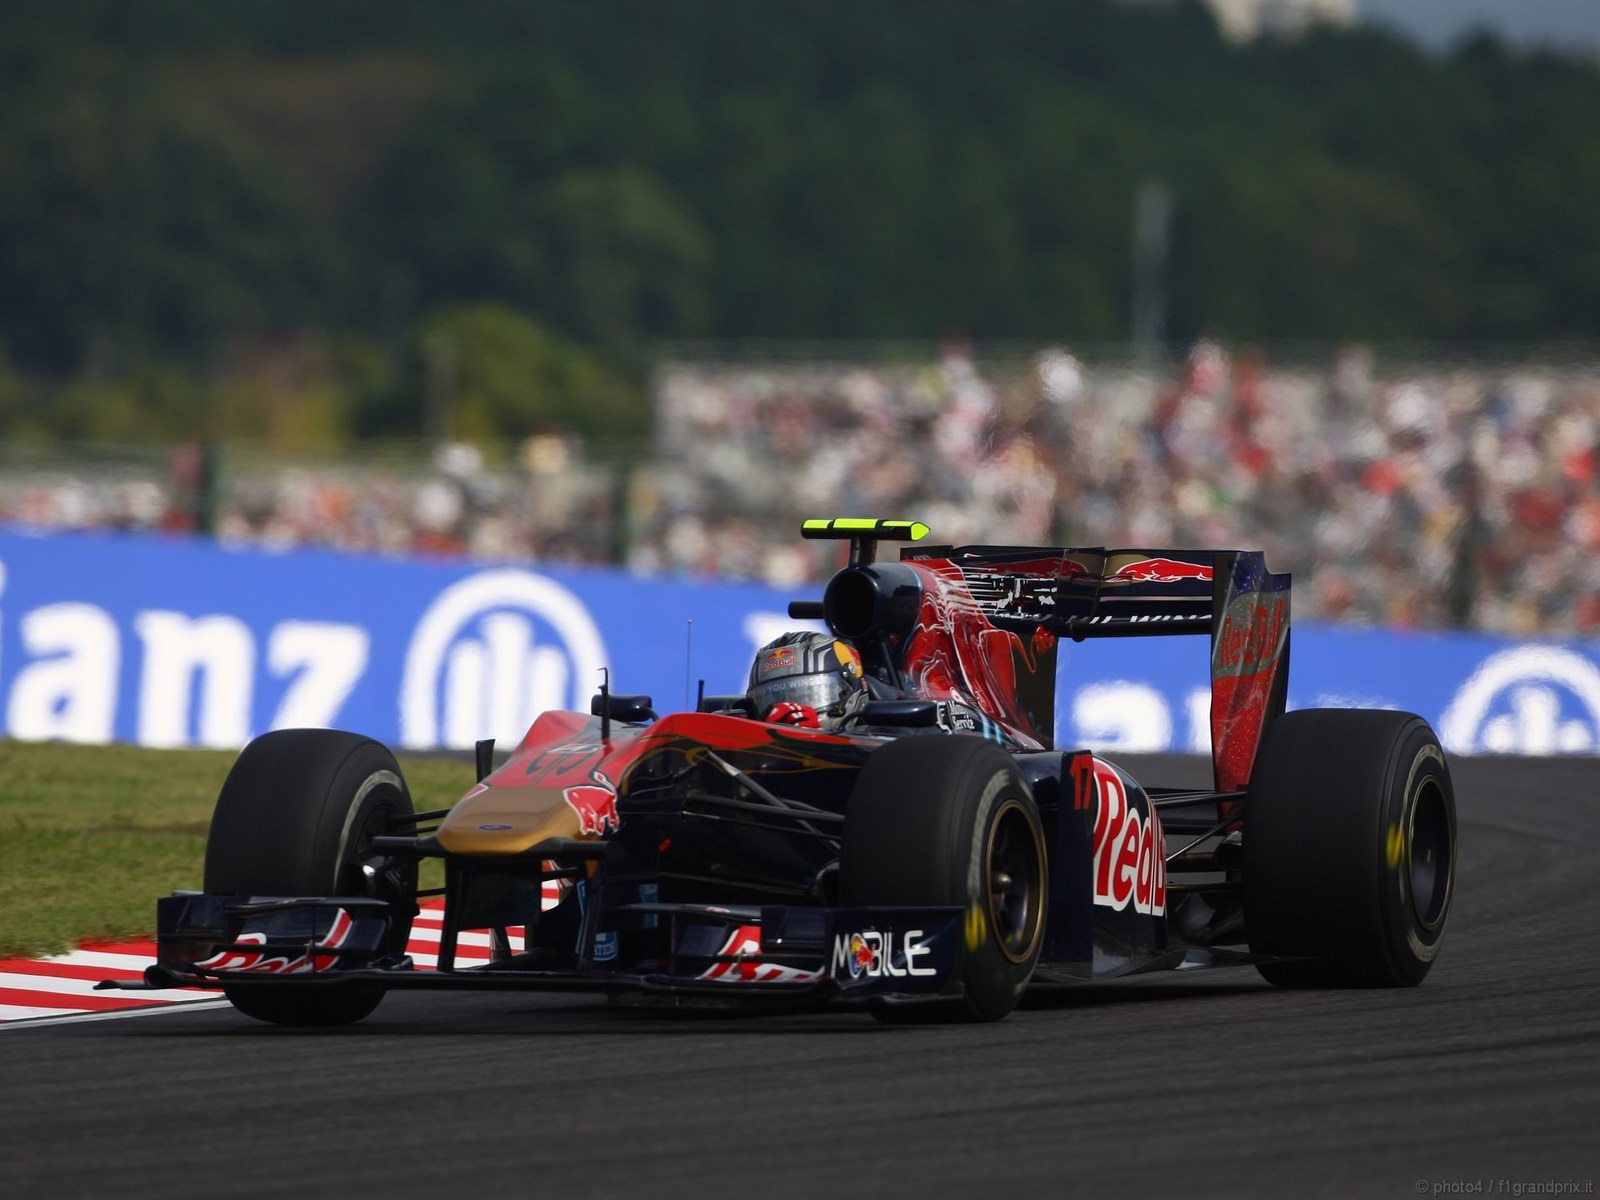 pojazdy - formula1 - gp_giappone_wallpapers_000045